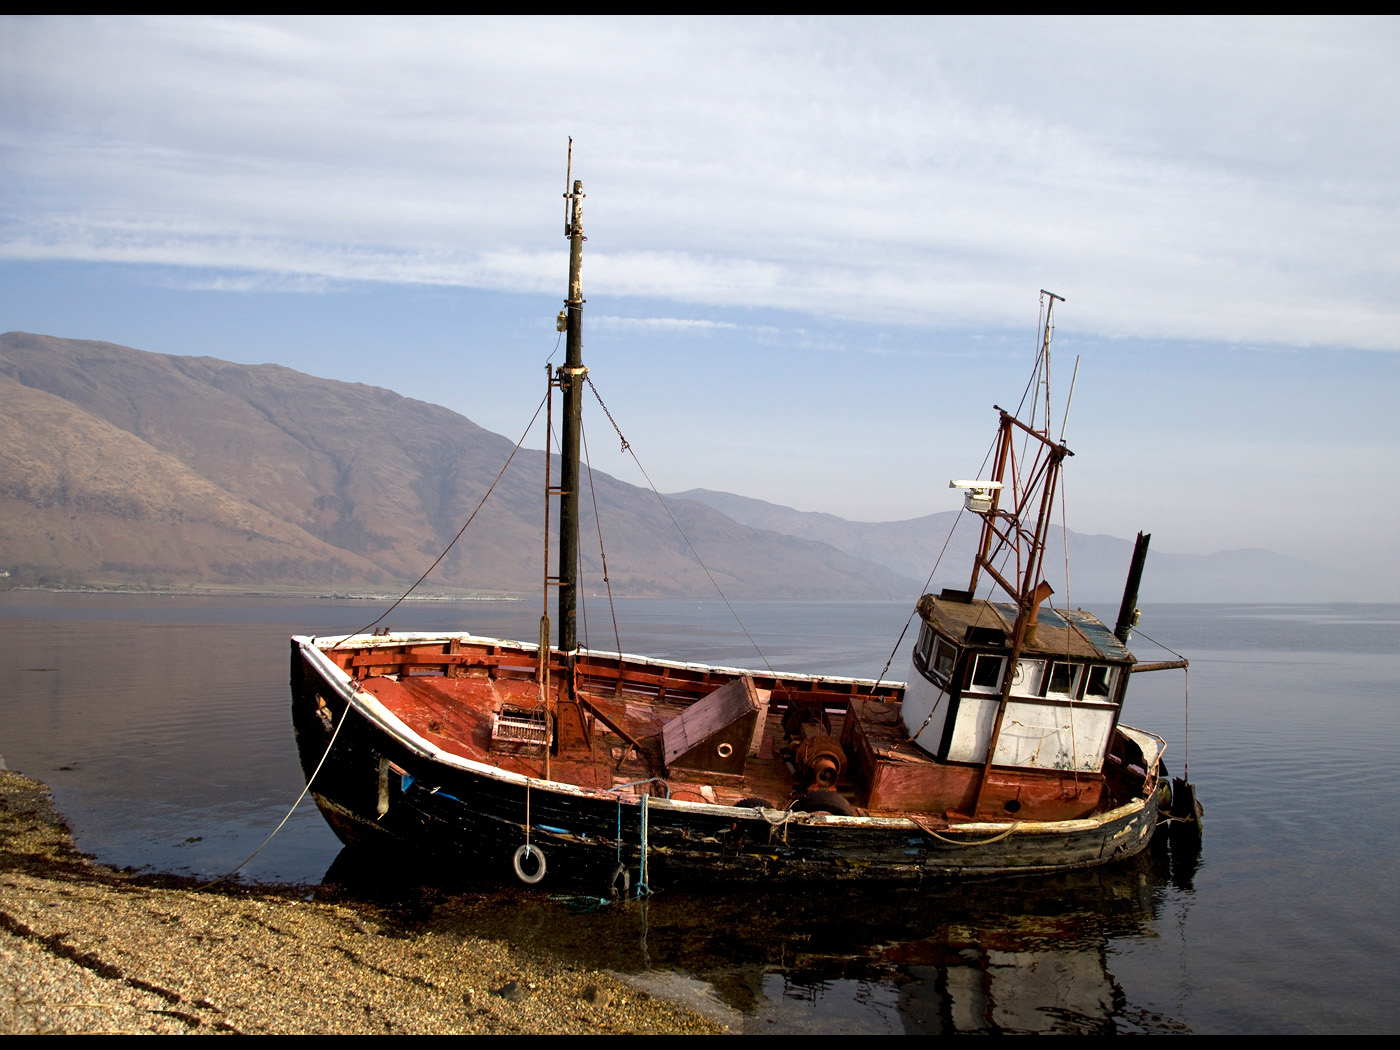 Colour Print - 1st Place: Old Boat at Curran by Iain Wilkie